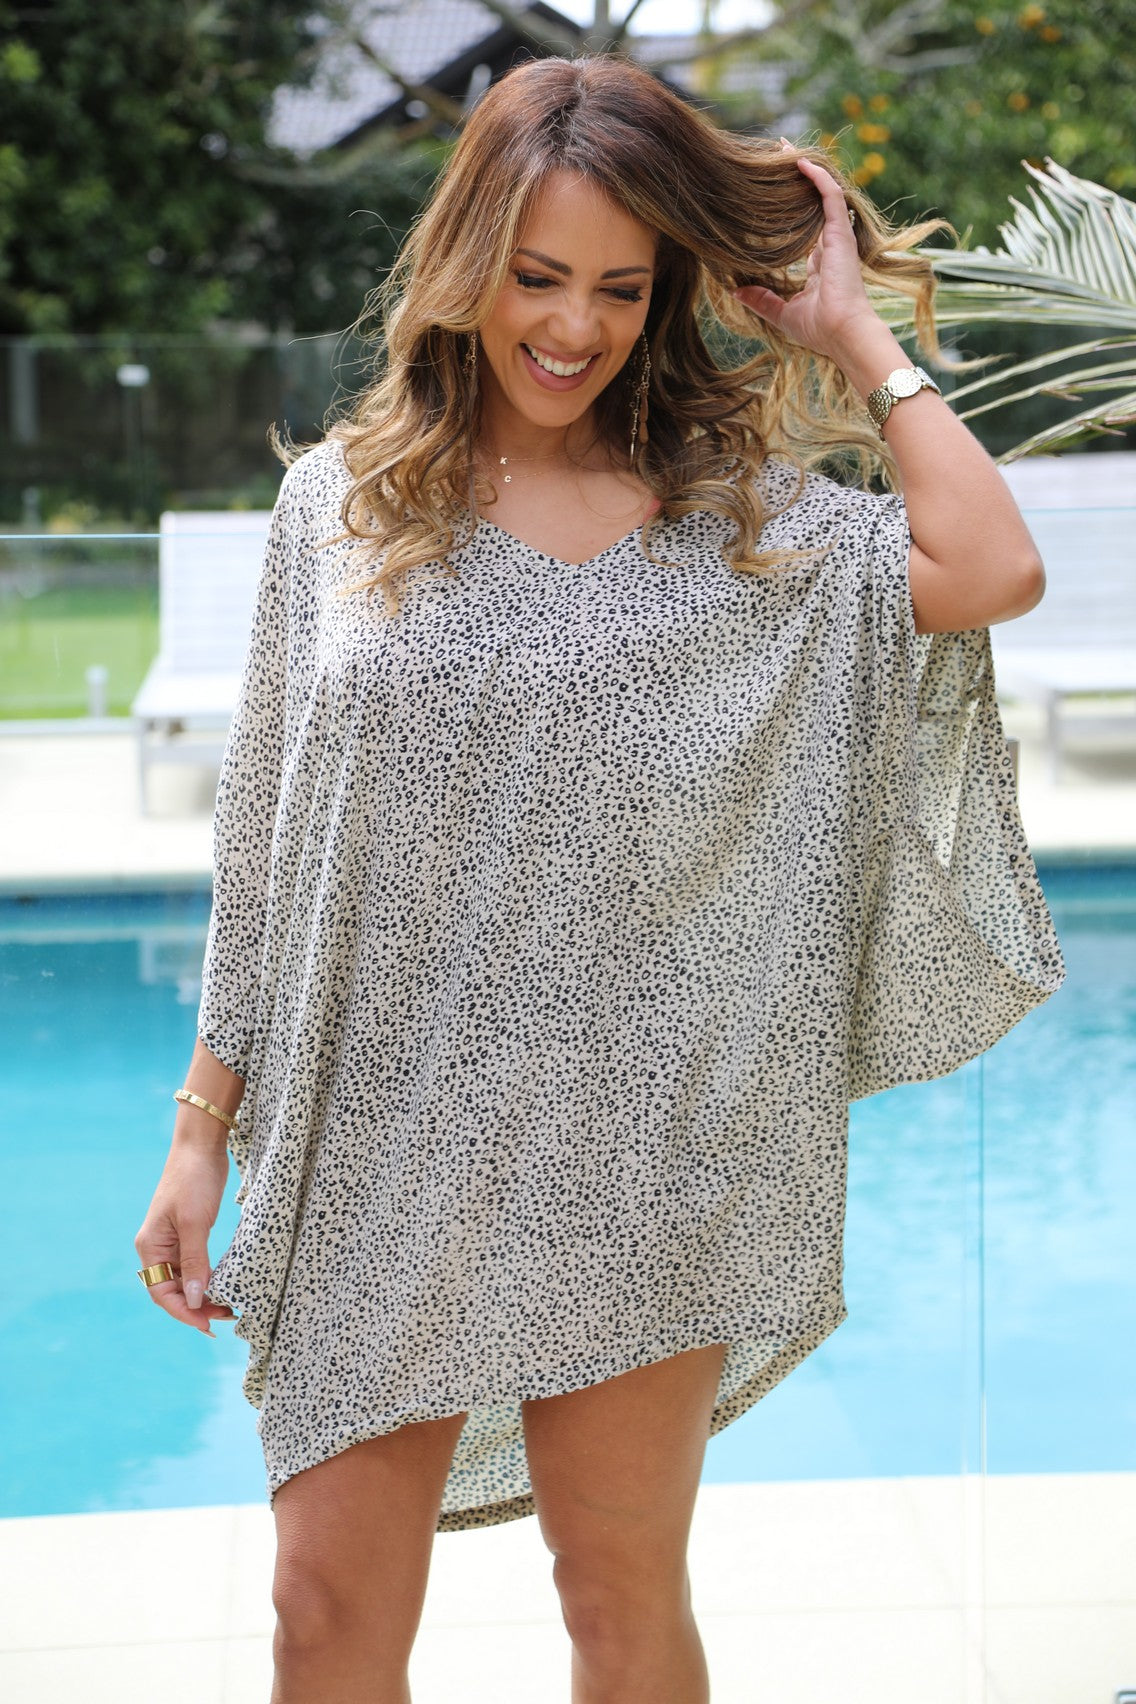 Over it Dress/Top - Small Leopard Print Cream